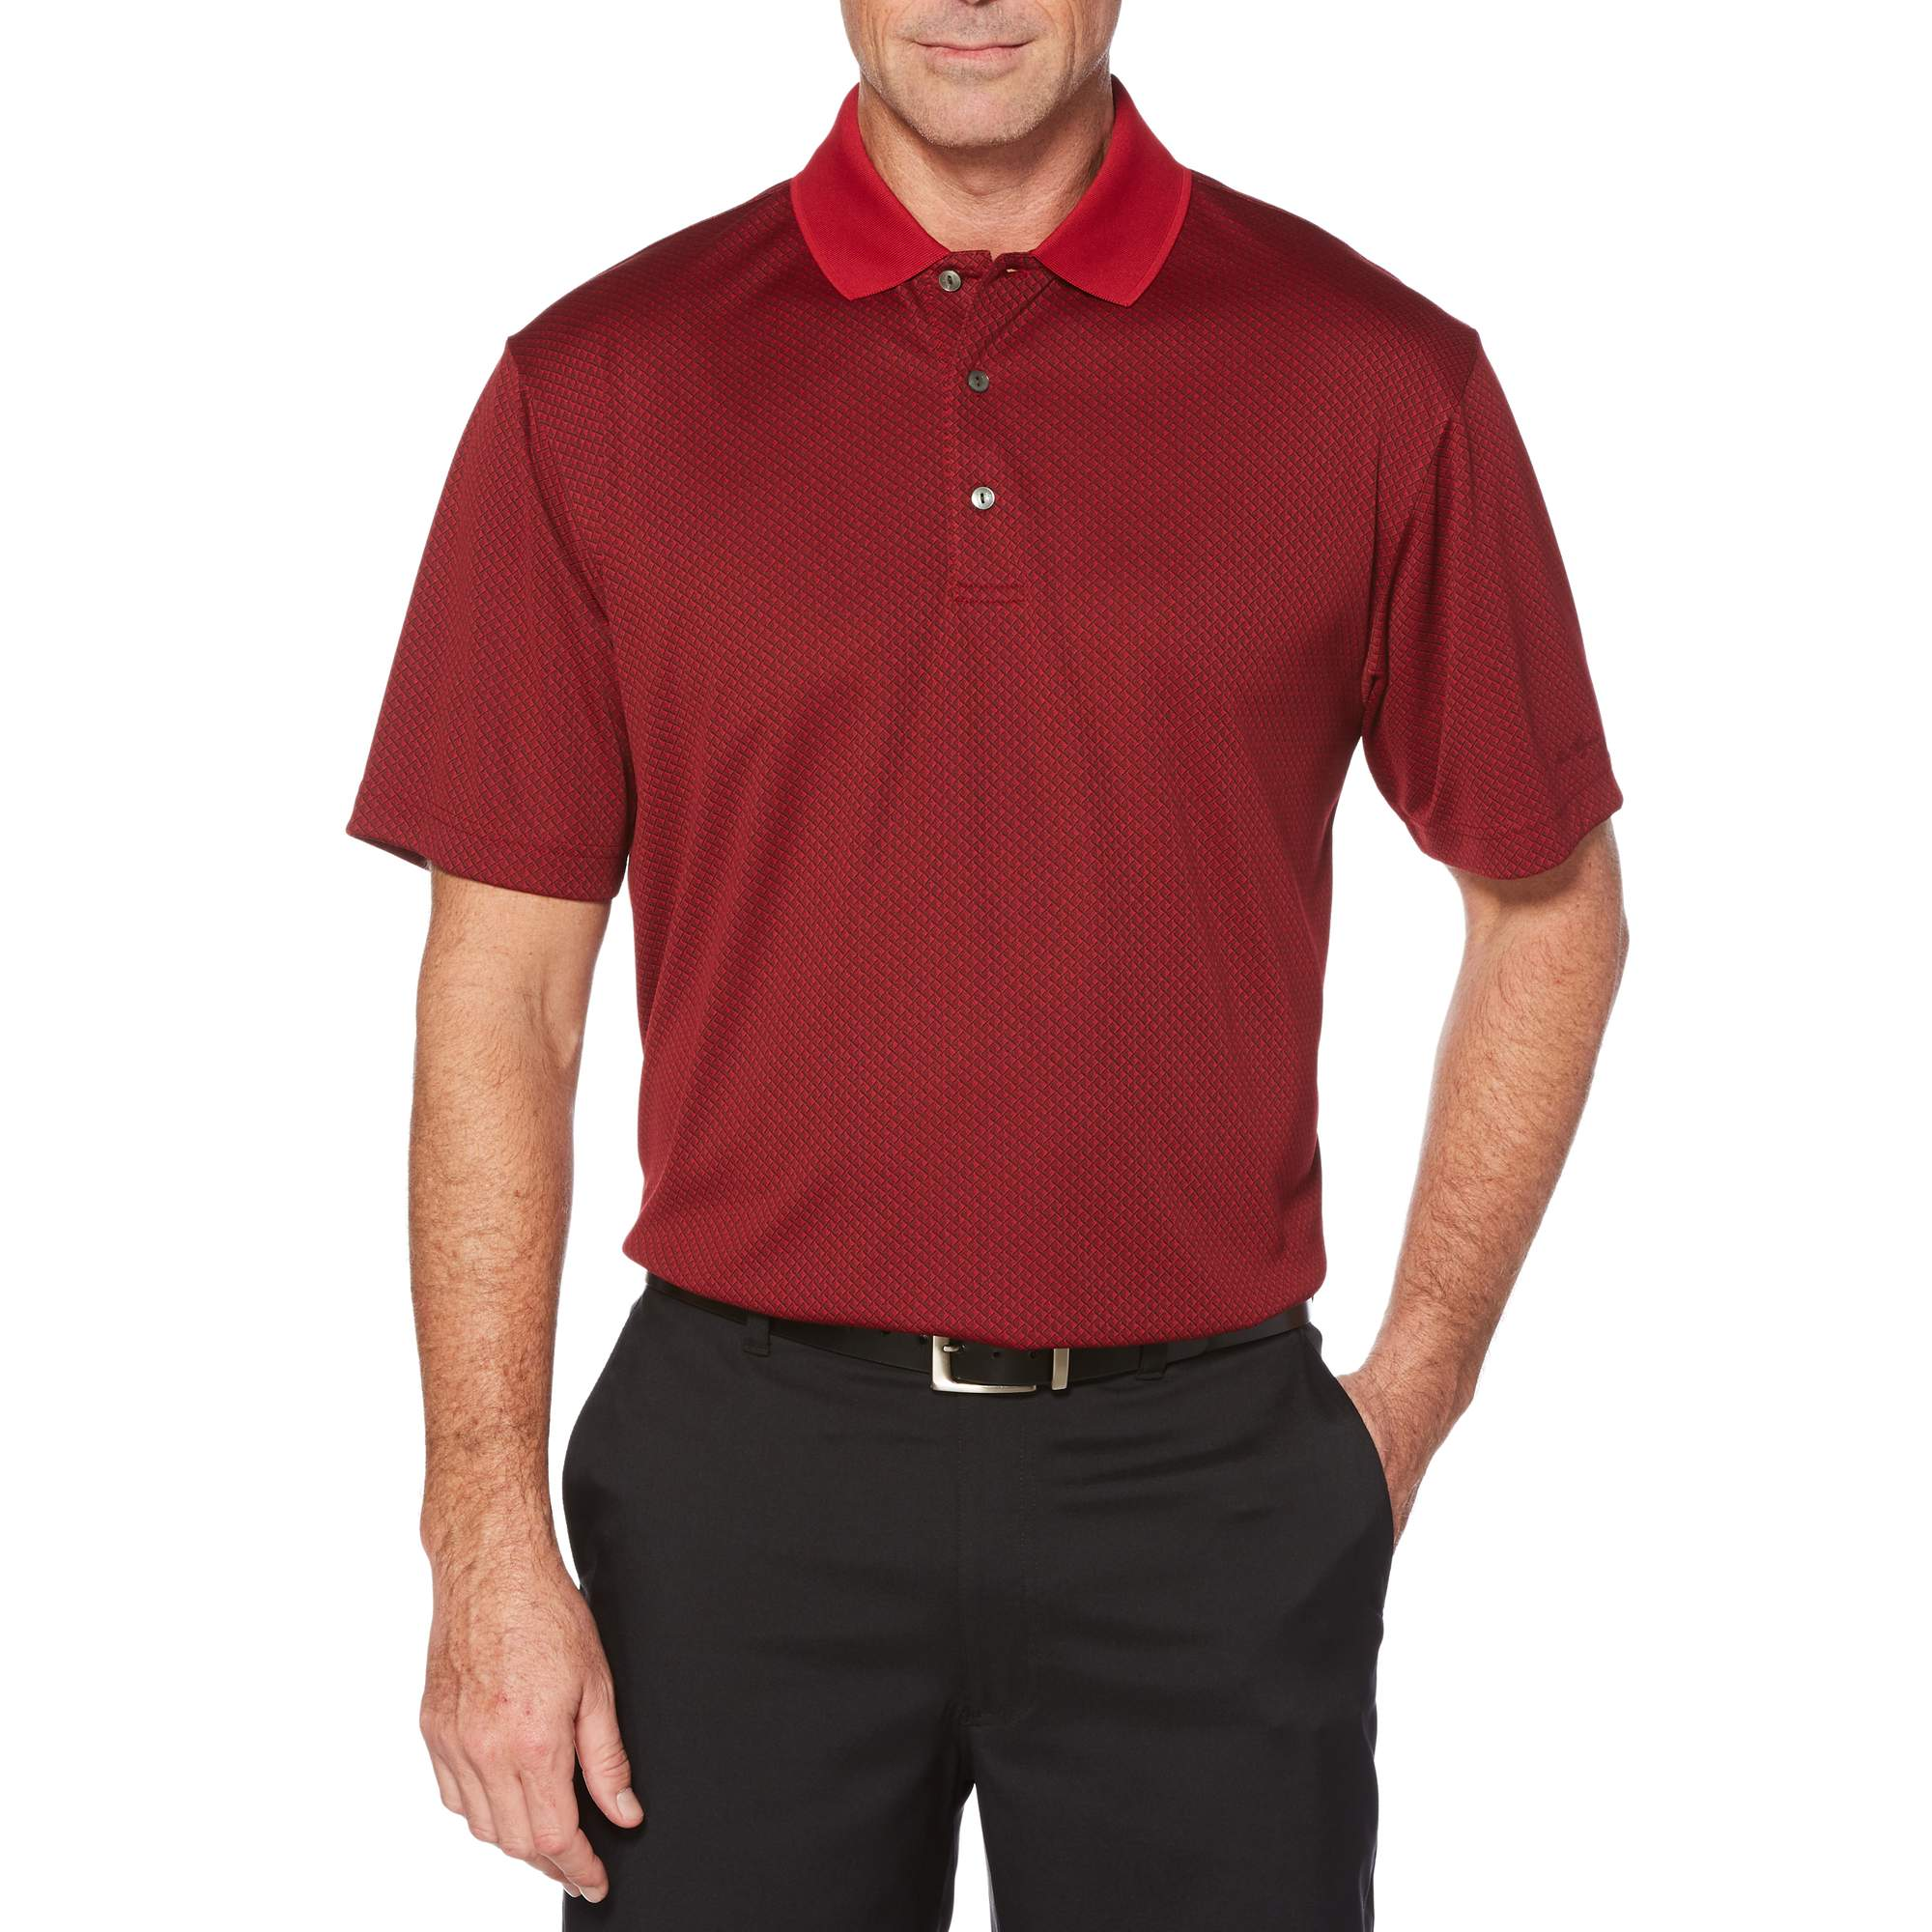 Big Men's Performance Short Sleeve Jacquard Golf Polo Shirt